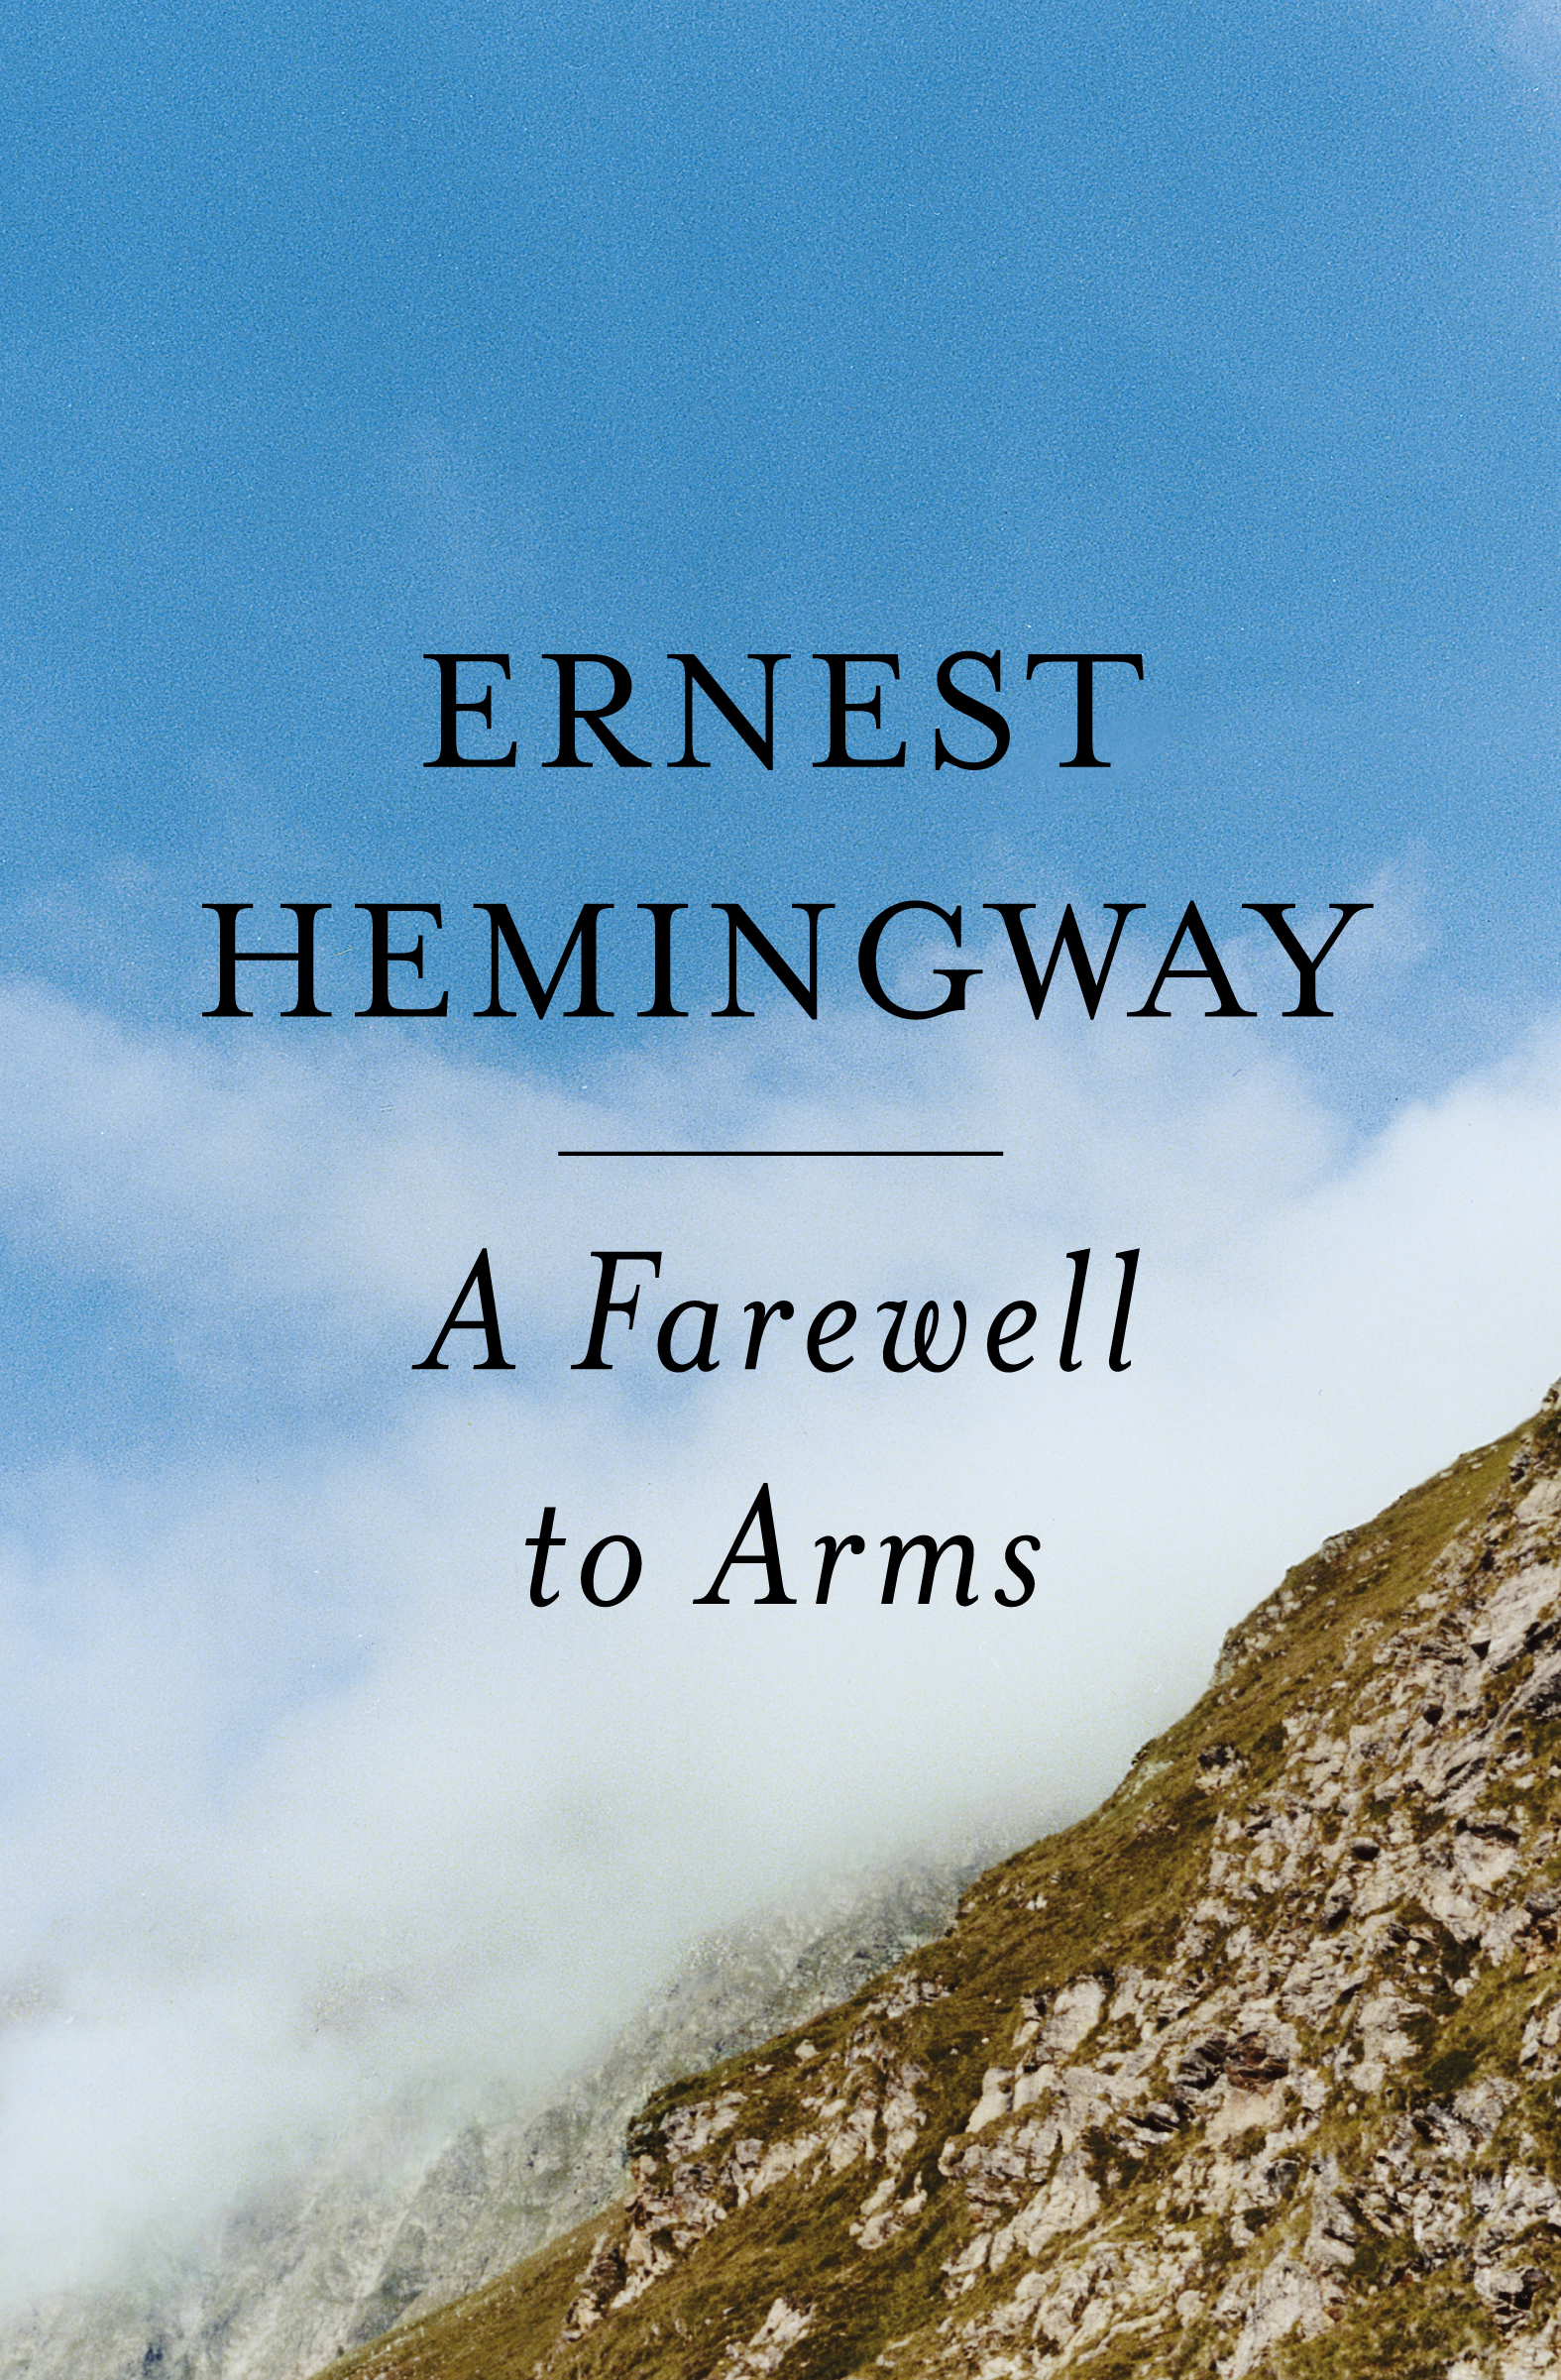 a farewell to arms book cover related keywords suggestions long farewell to arms